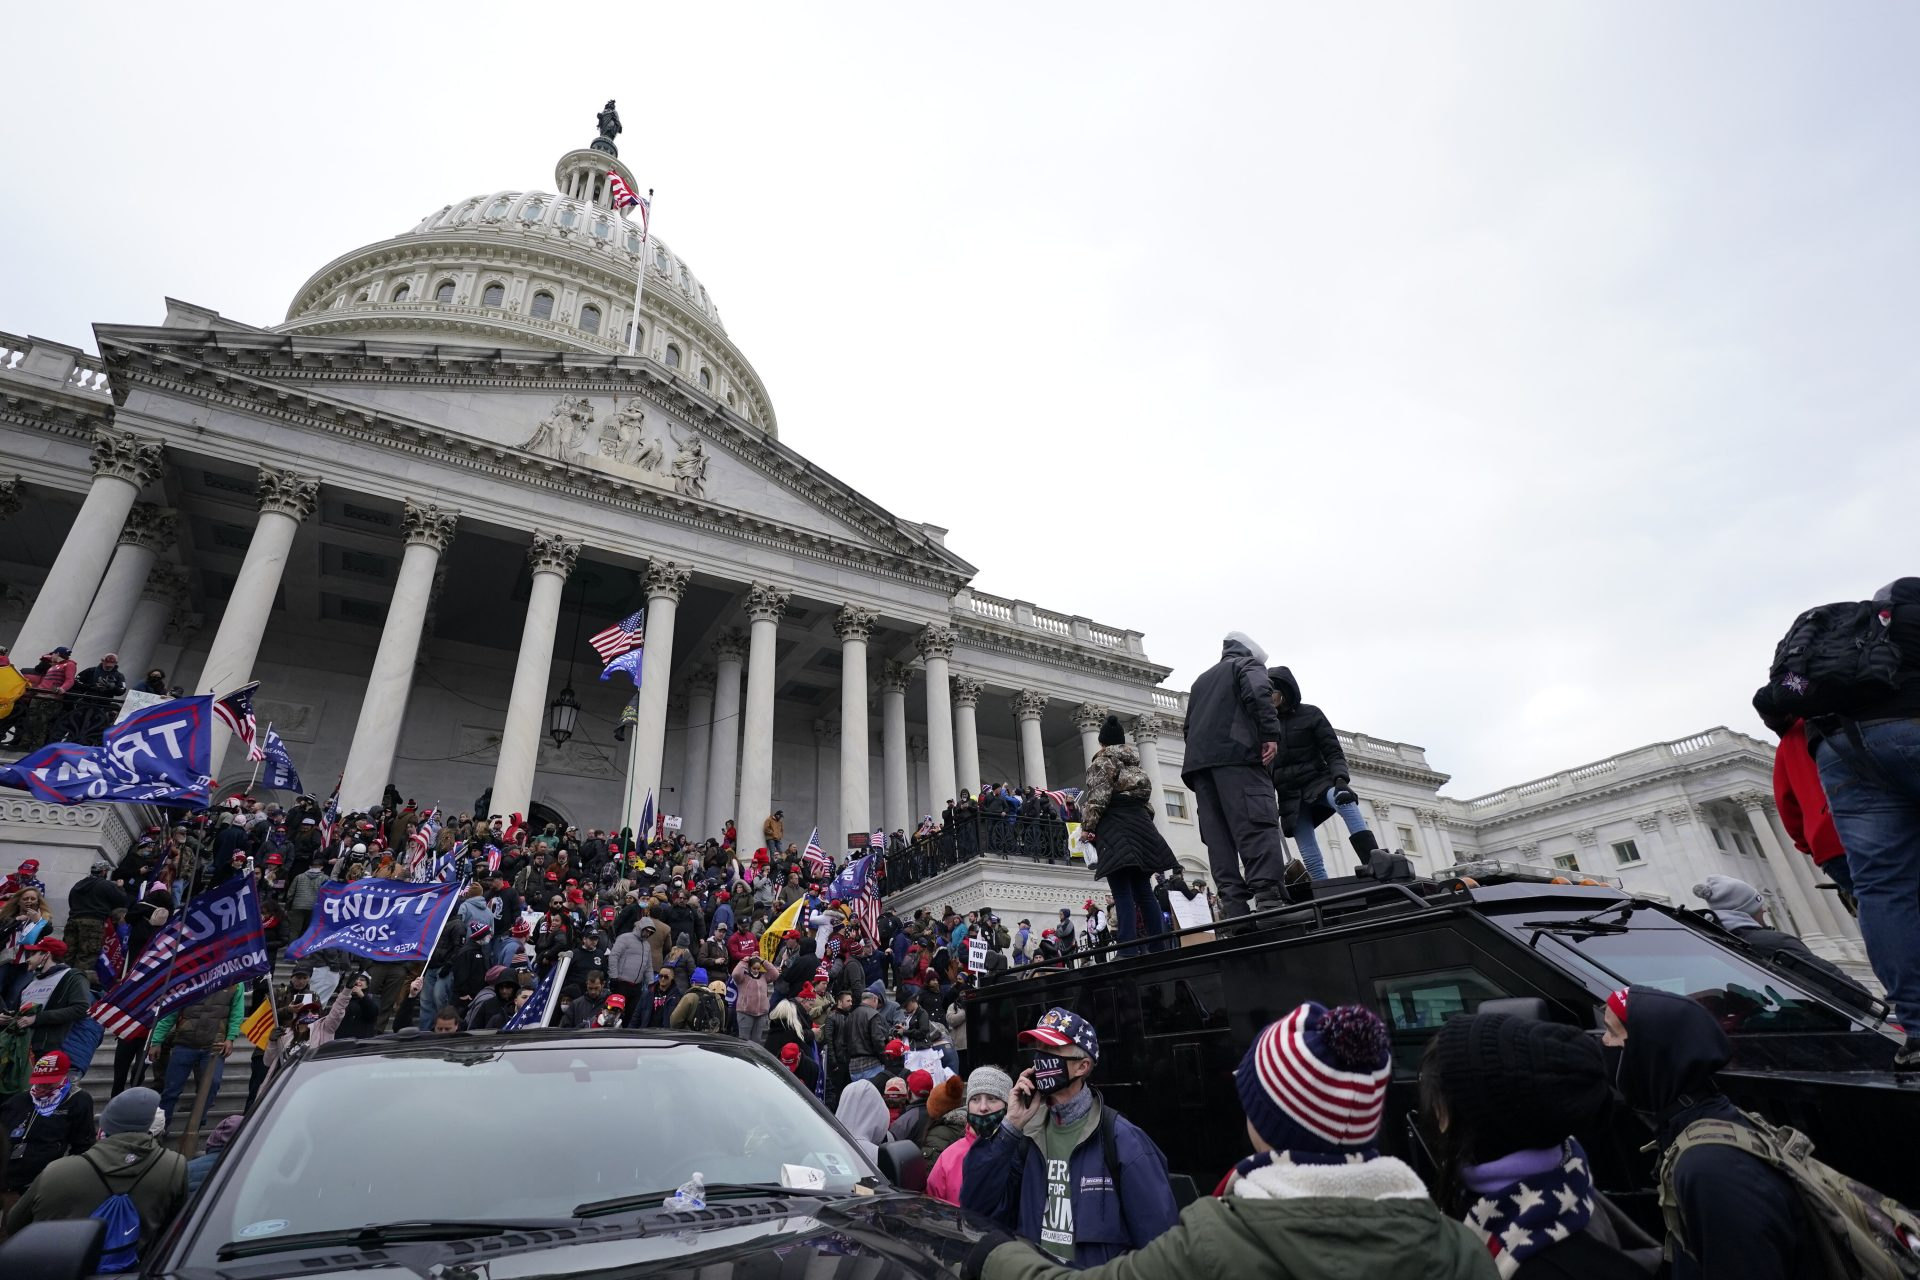 Trump supporters stand on top of a police vehicle, Wednesday, Jan. 6, 2021, at the Capitol in Washington. As Congress prepares to affirm President-elect Joe Biden's victory, thousands of people have gathered to show their support for President Donald Trump and his claims of election fraud.